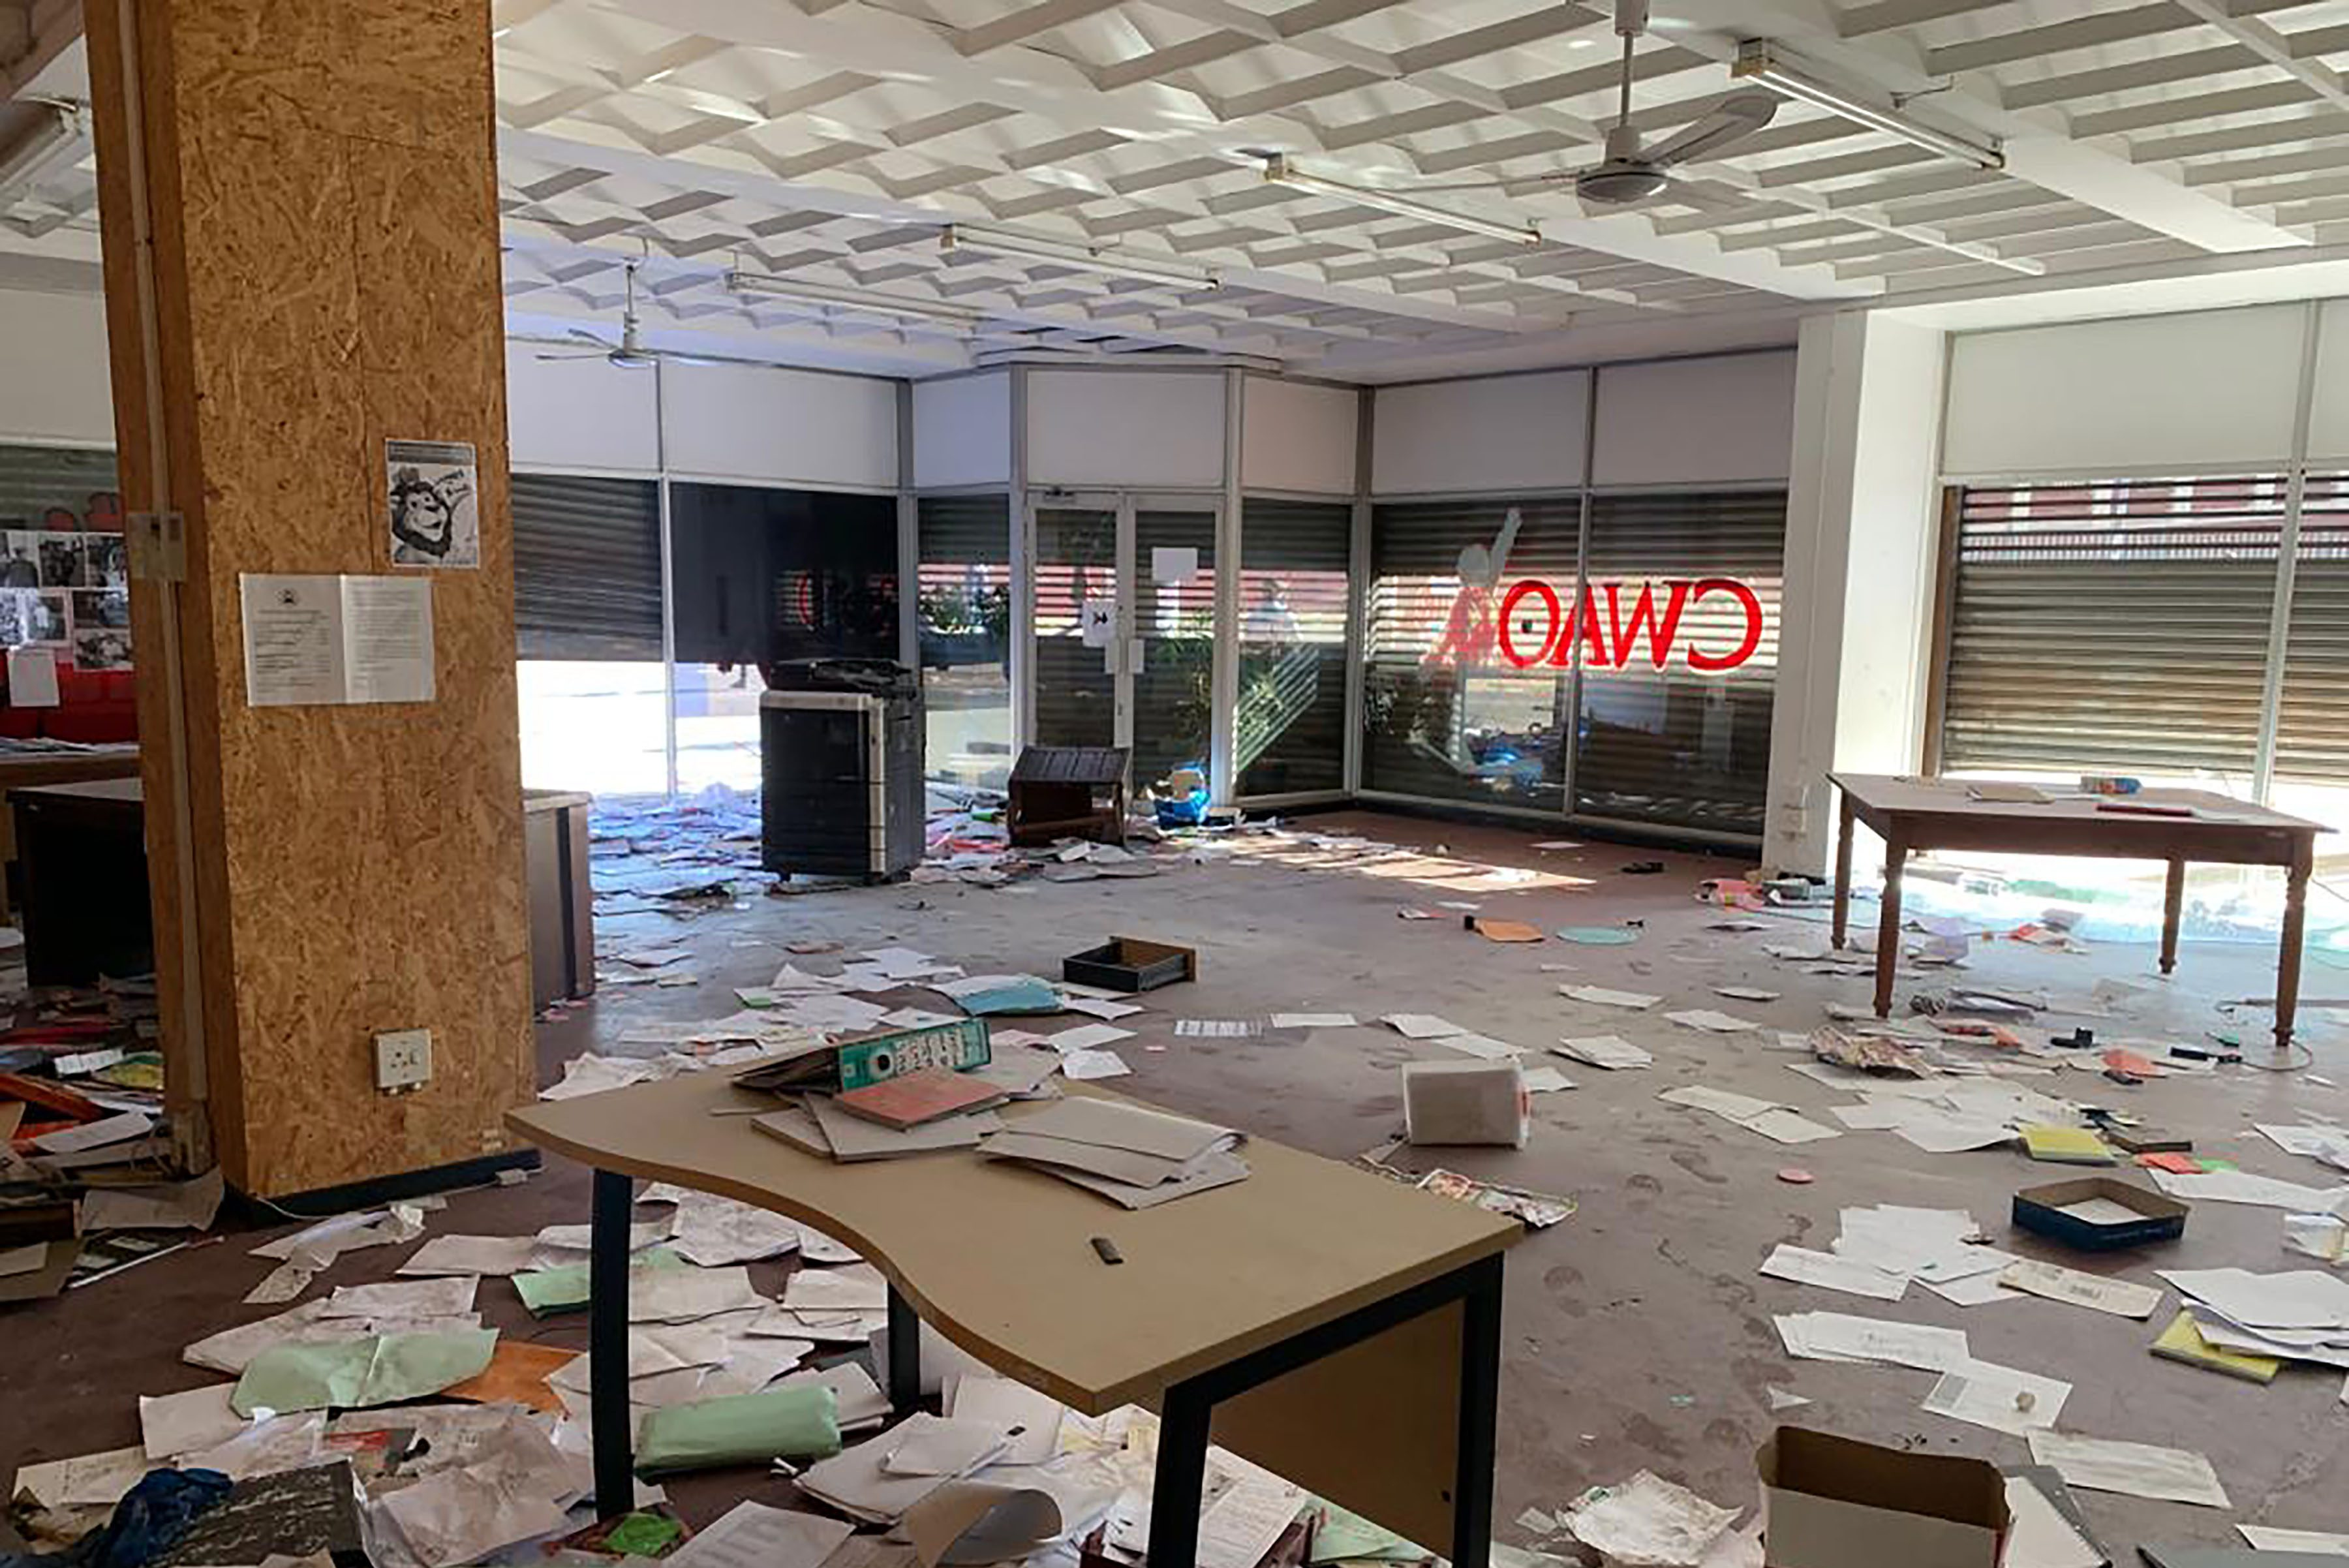 3 September 2019: The interior of the Casual Workers Advice Office in Germiston, which was looted and burned during xenophobic violence this week. (Photograph by Carin Runciman)